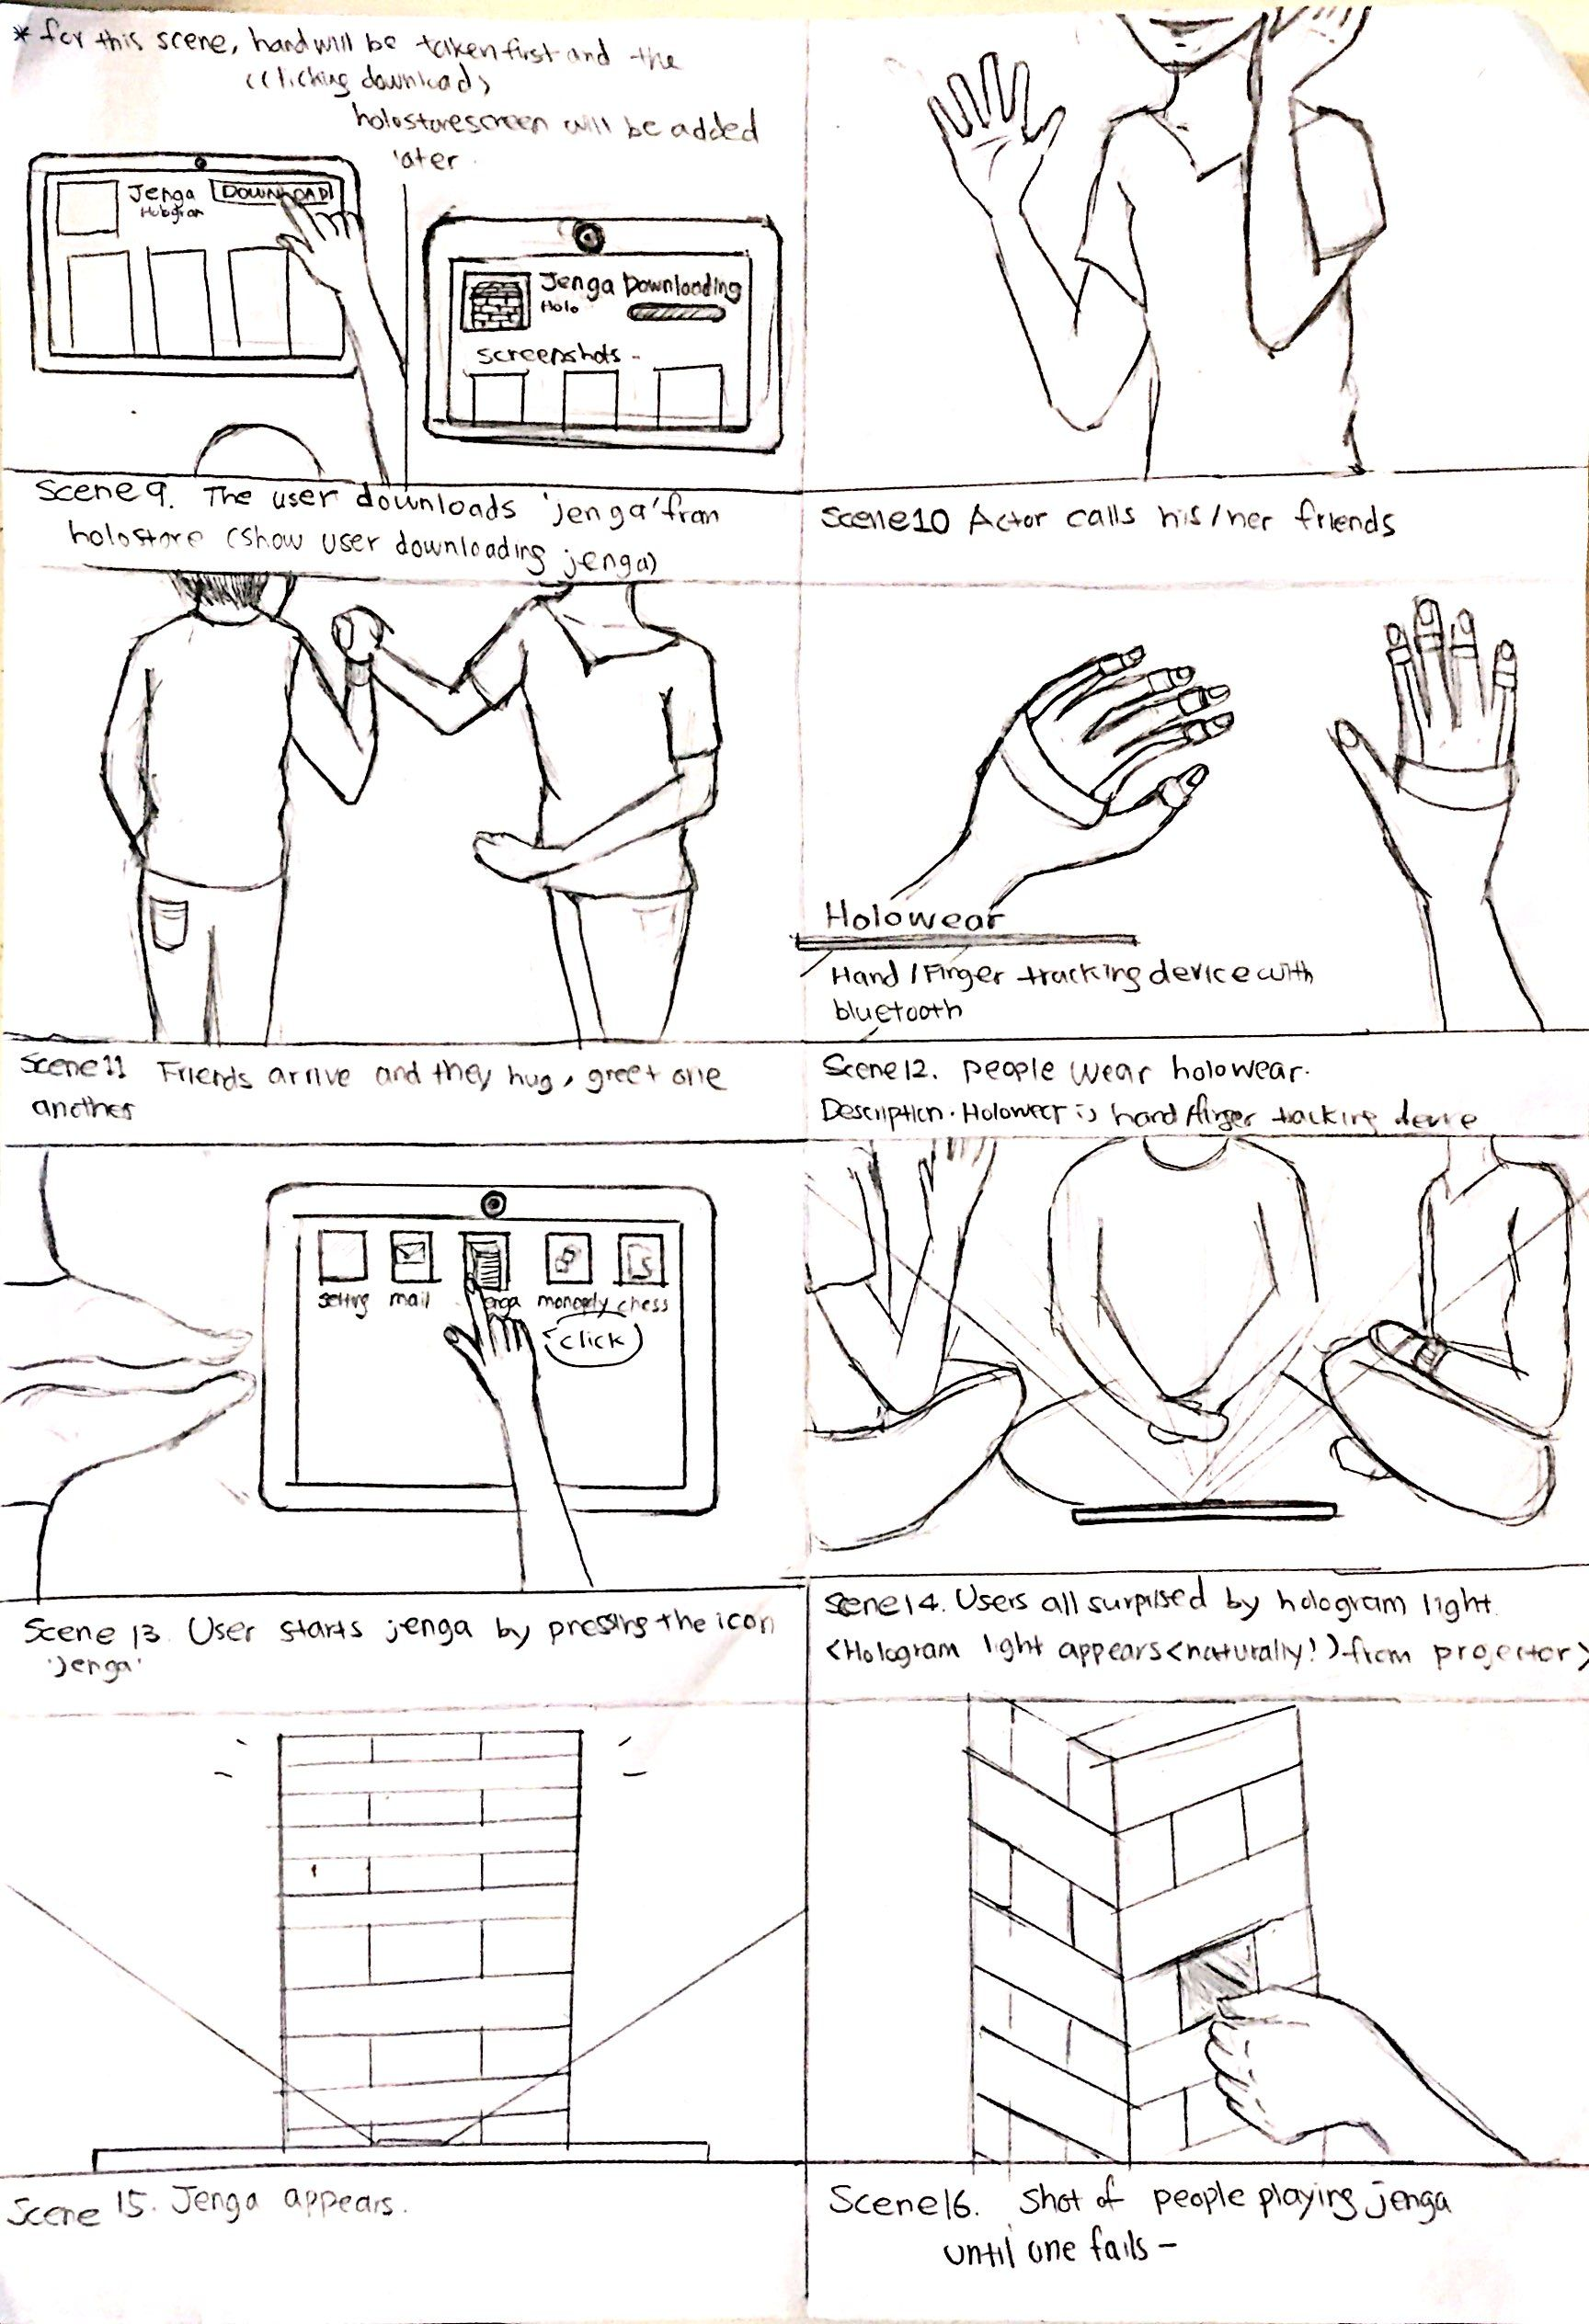 Storyboard For Concept Video Holog